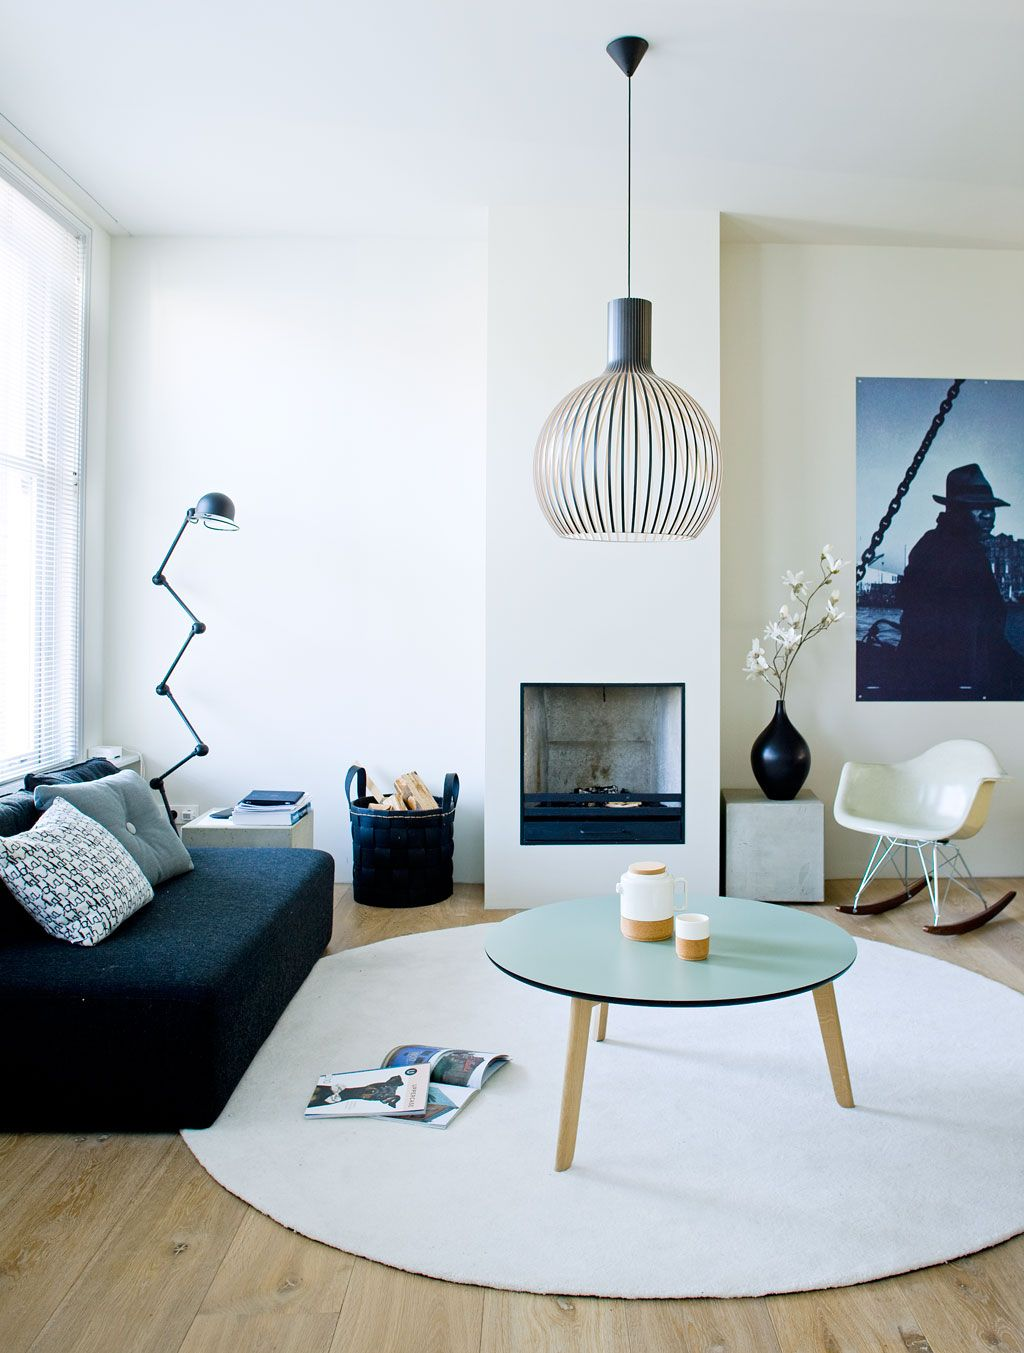 The Shape Of The Black Vase And The Lamp Above The Coffee Table Http Www Weidesign Nl Produkten 616 Secto Design Met Afbeeldingen Thuis Woonkamer Huis Interieur Home Deco